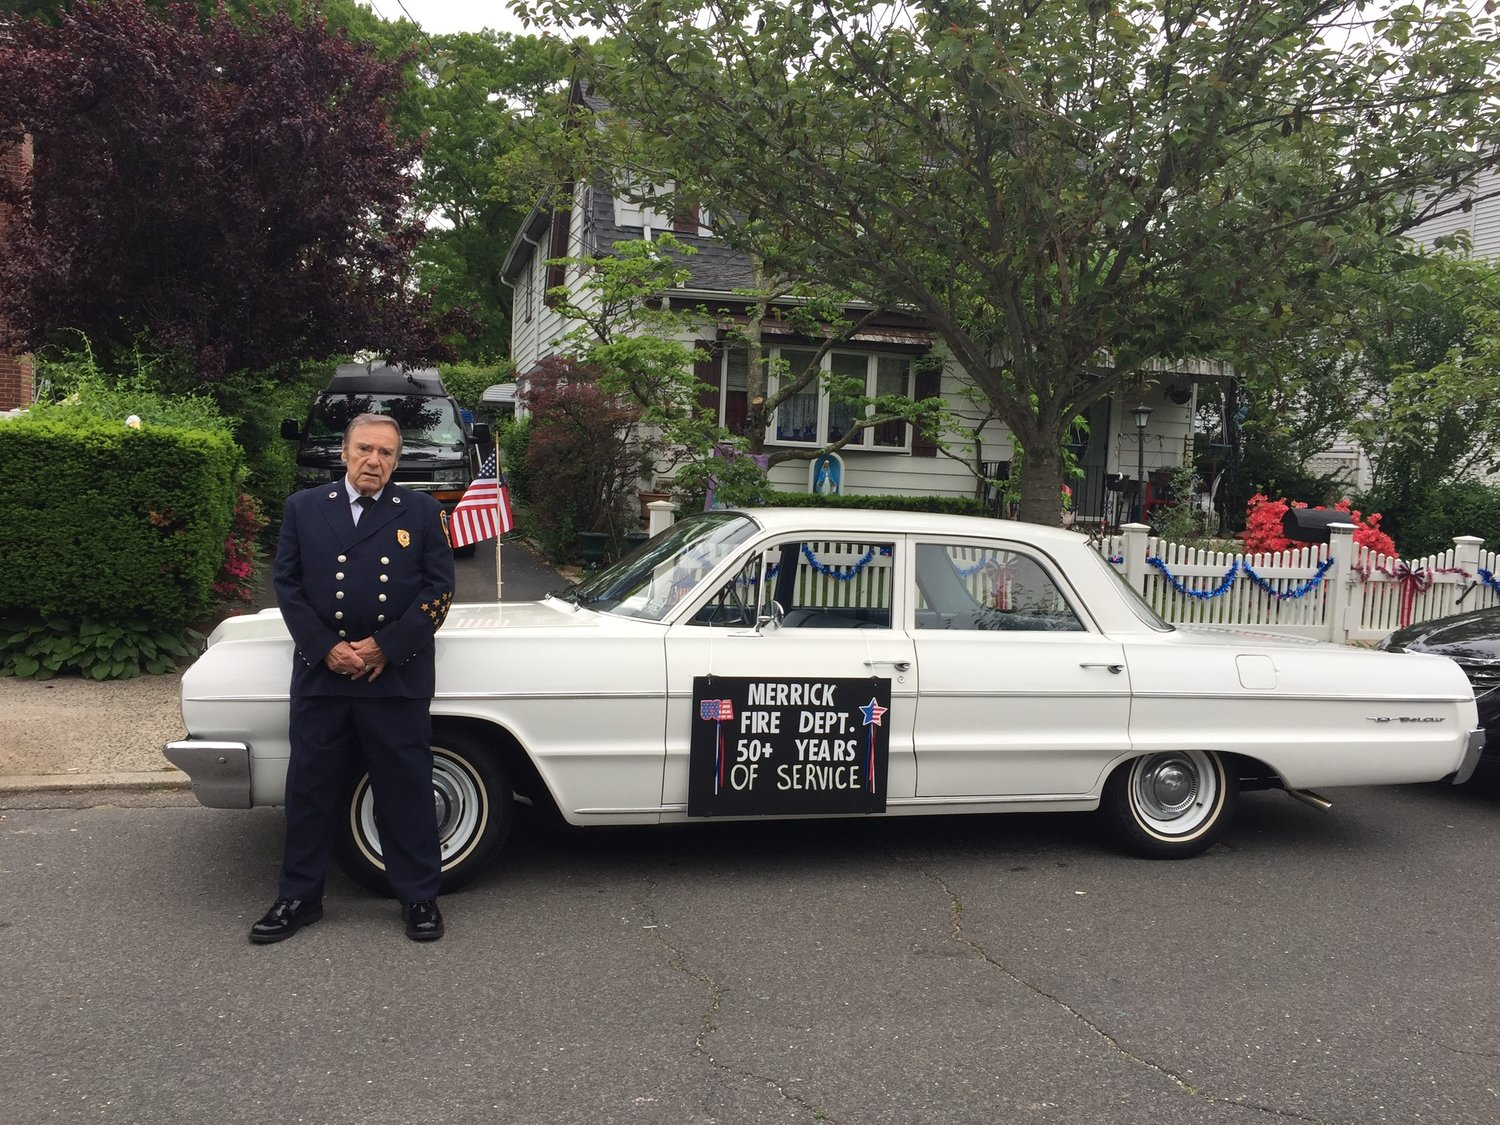 To mark his 50th year in the fire service, Martin Abrams's son chauffeured his father in Merrick's 2017 Memorial Day parade in a 1964 Chevrolet.